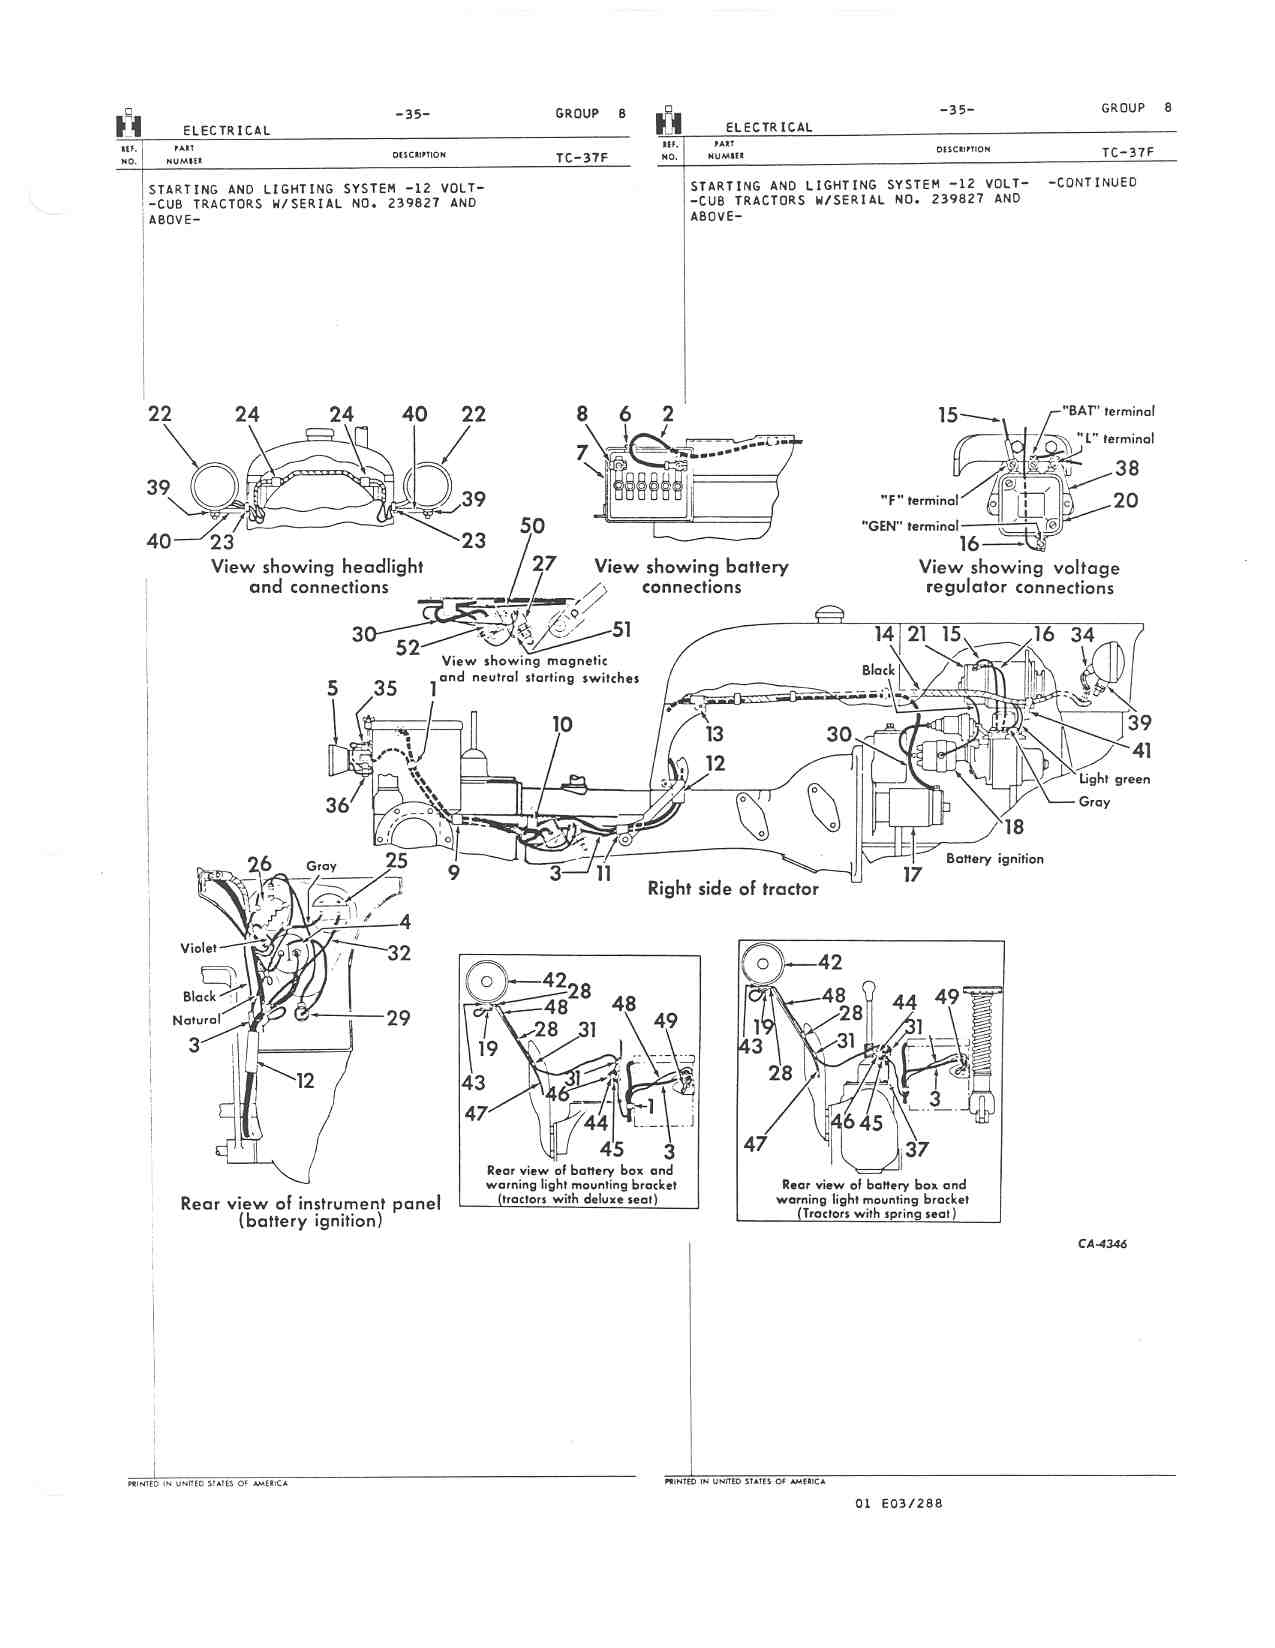 Wiring Diagram For Farmall 656 - Diagram Schematic Ideas on